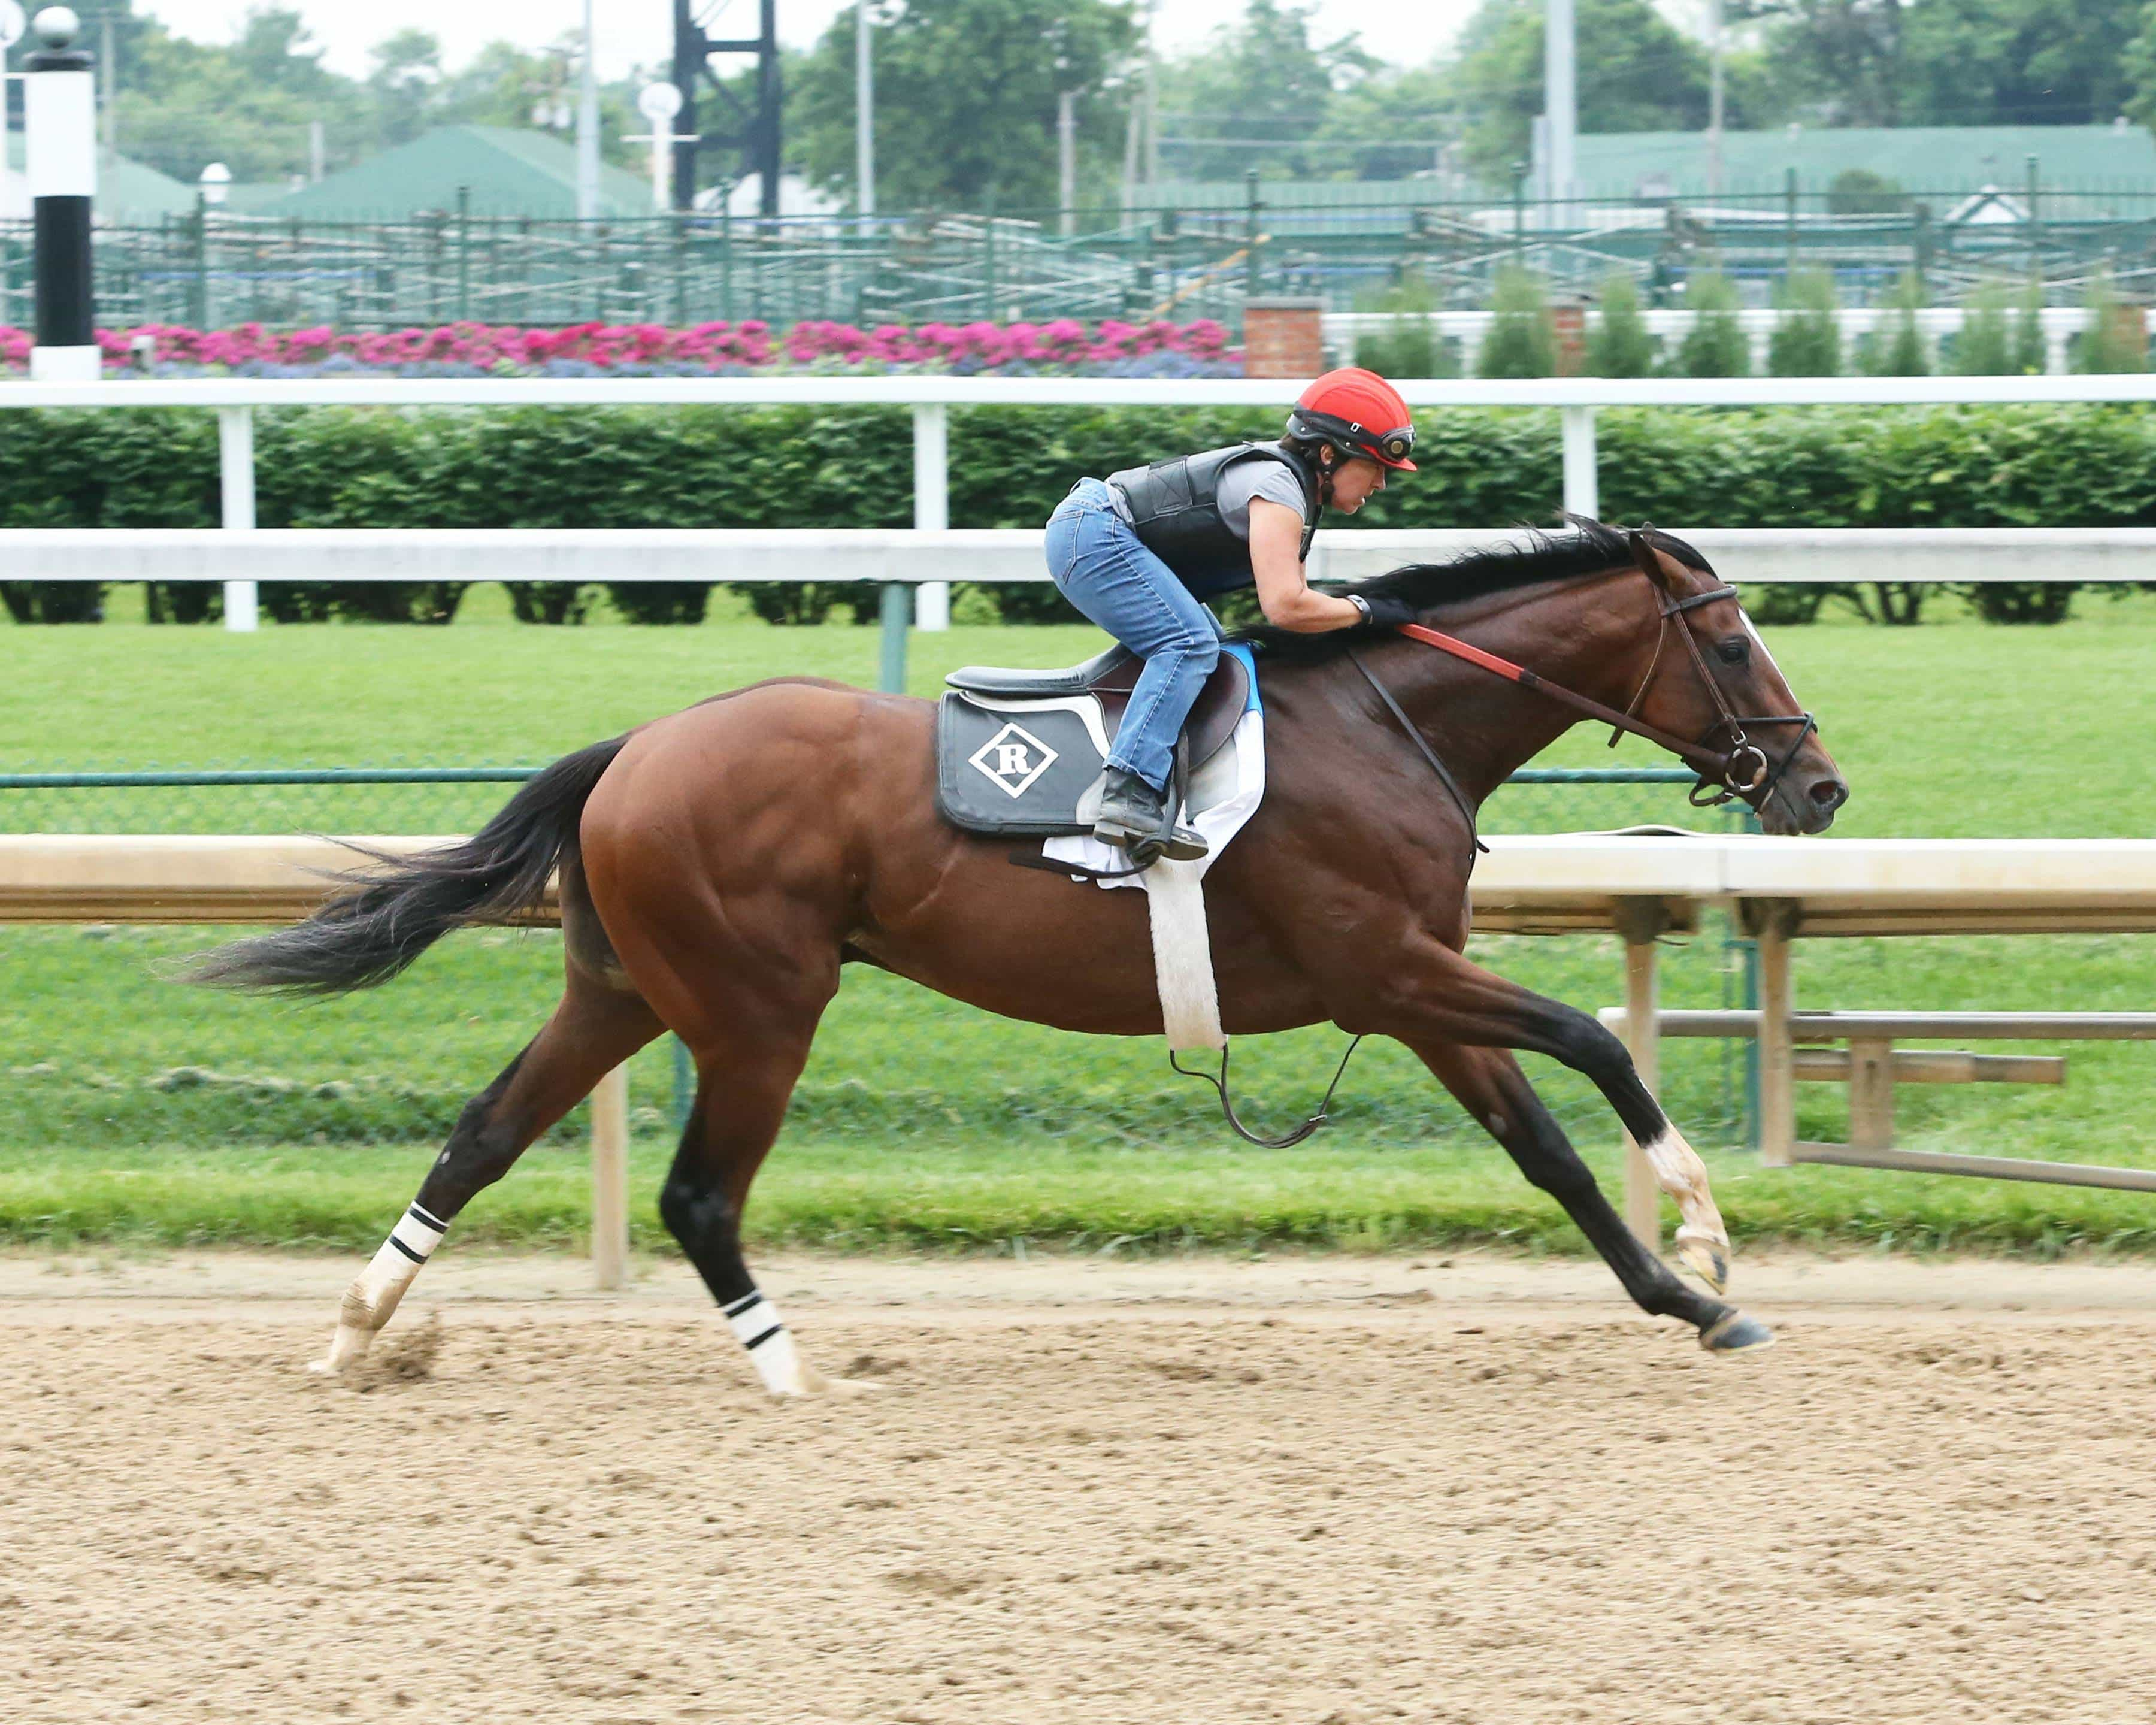 Brodys Cause - Morning - CD - 052816-Churchill Downs/Coady Photography